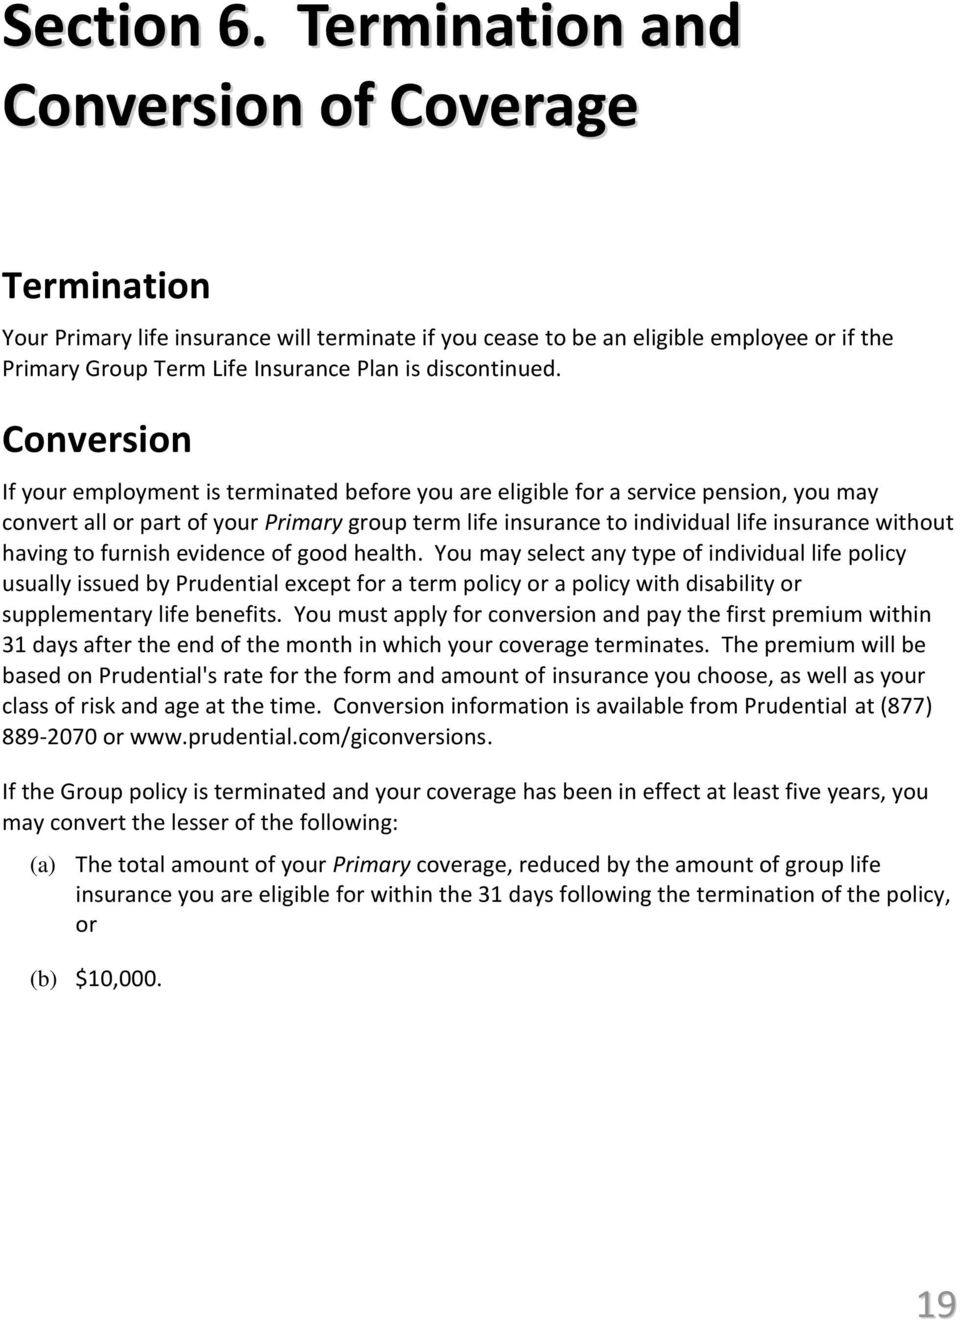 Conversion If your employment is terminated before you are eligible for a service pension, you may convert all or part of your Primary group term life insurance to individual life insurance without